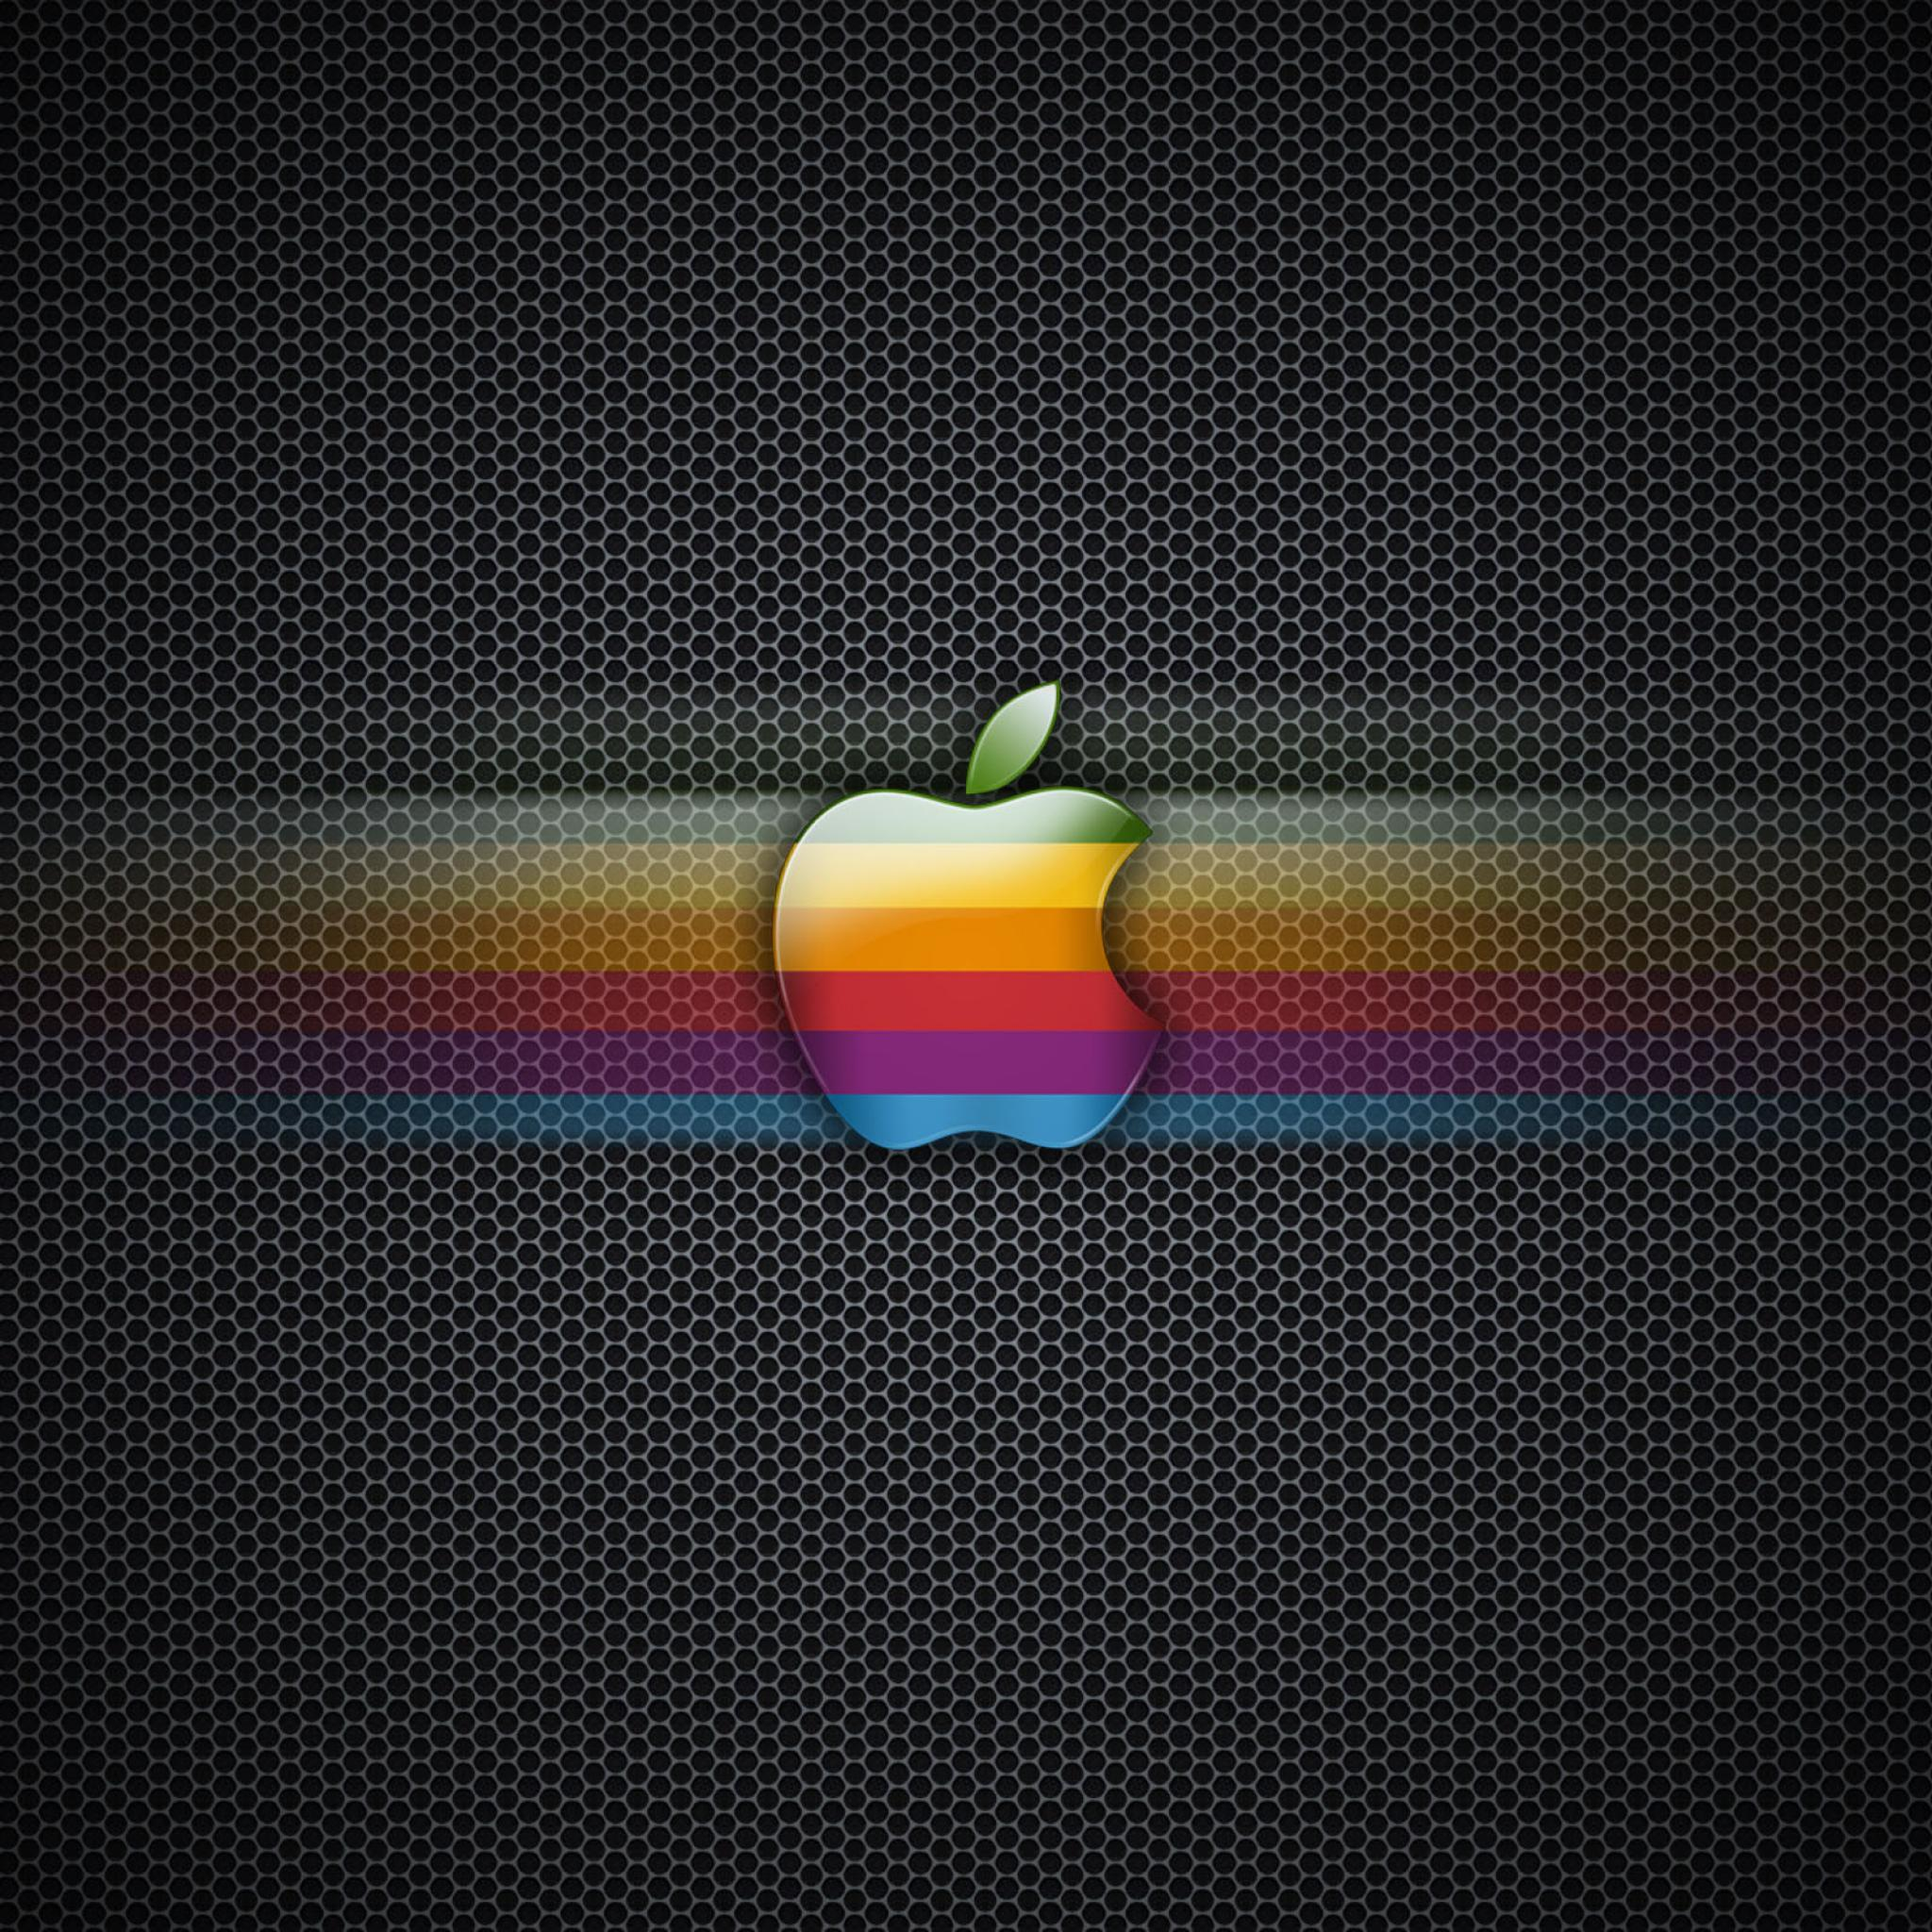 Apple-Logo-3Wallpapers iPad Retina